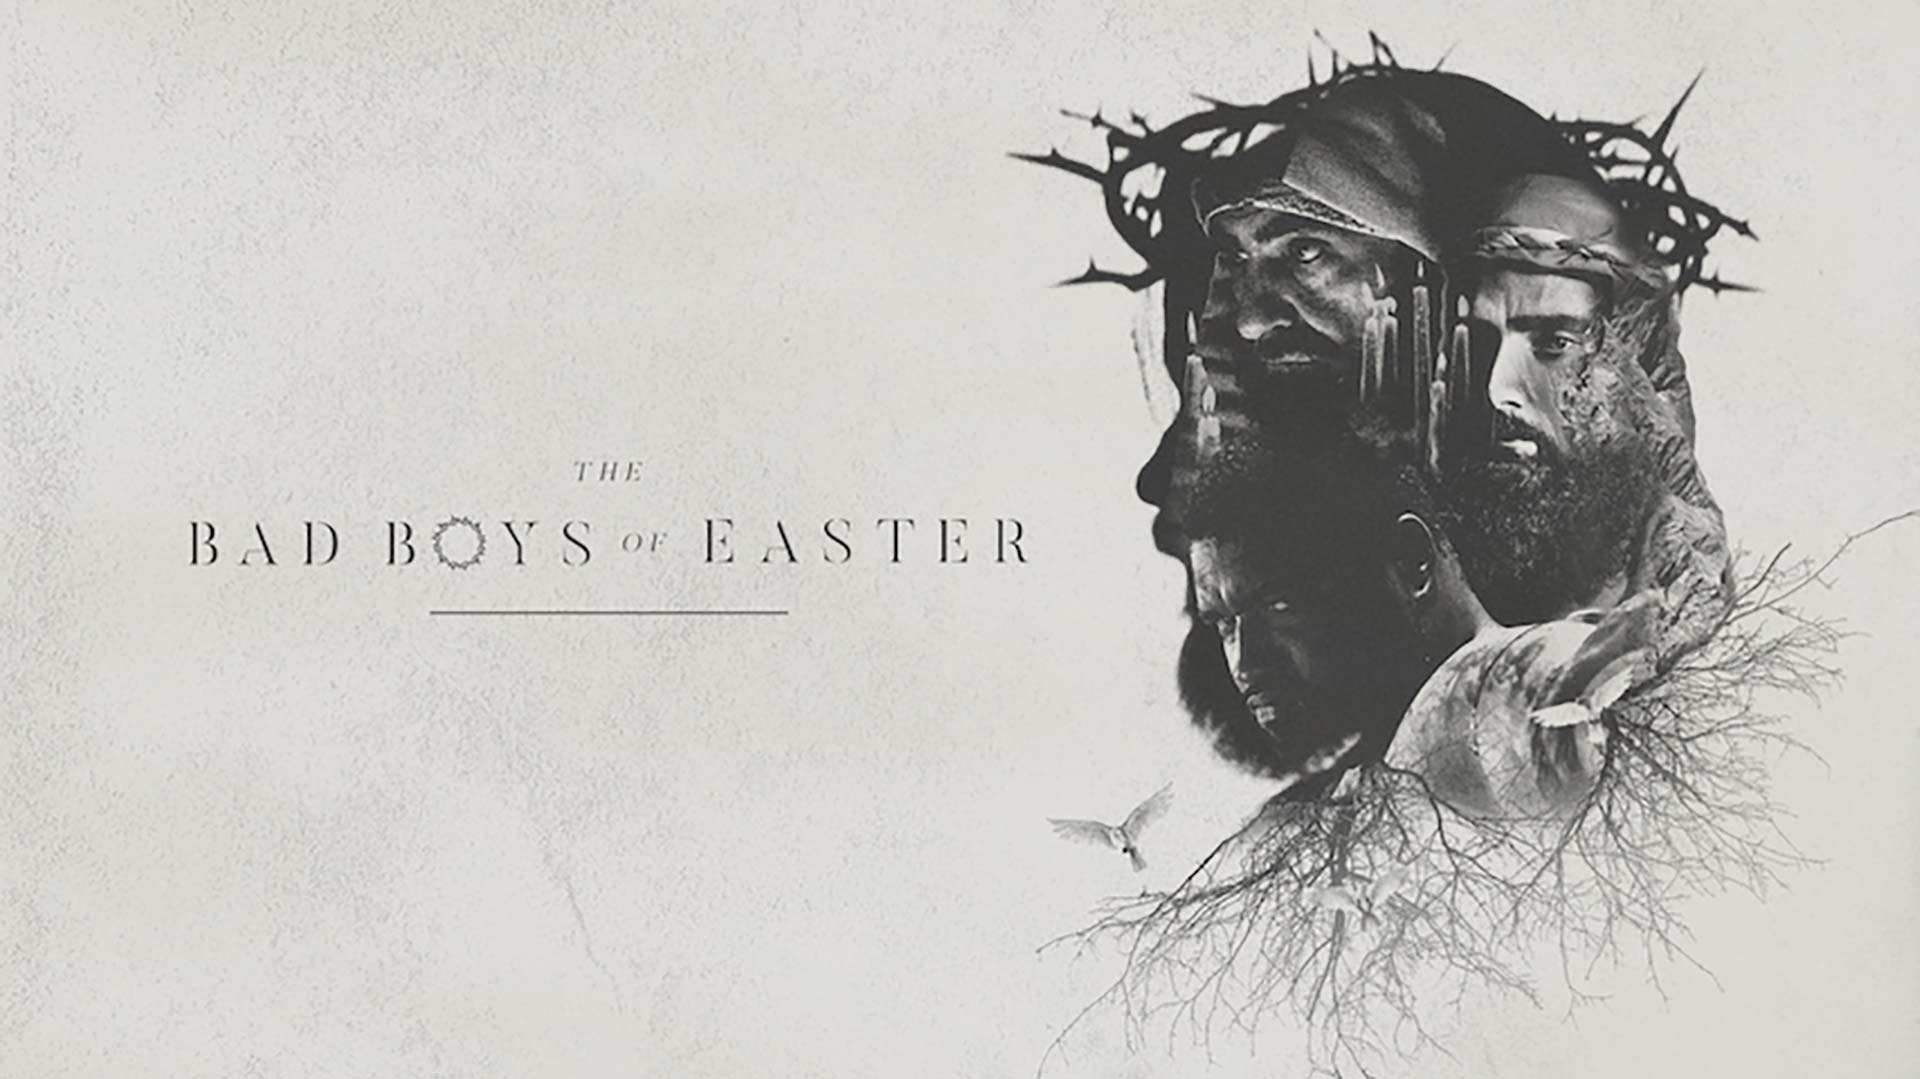 Bad Boys of Easter